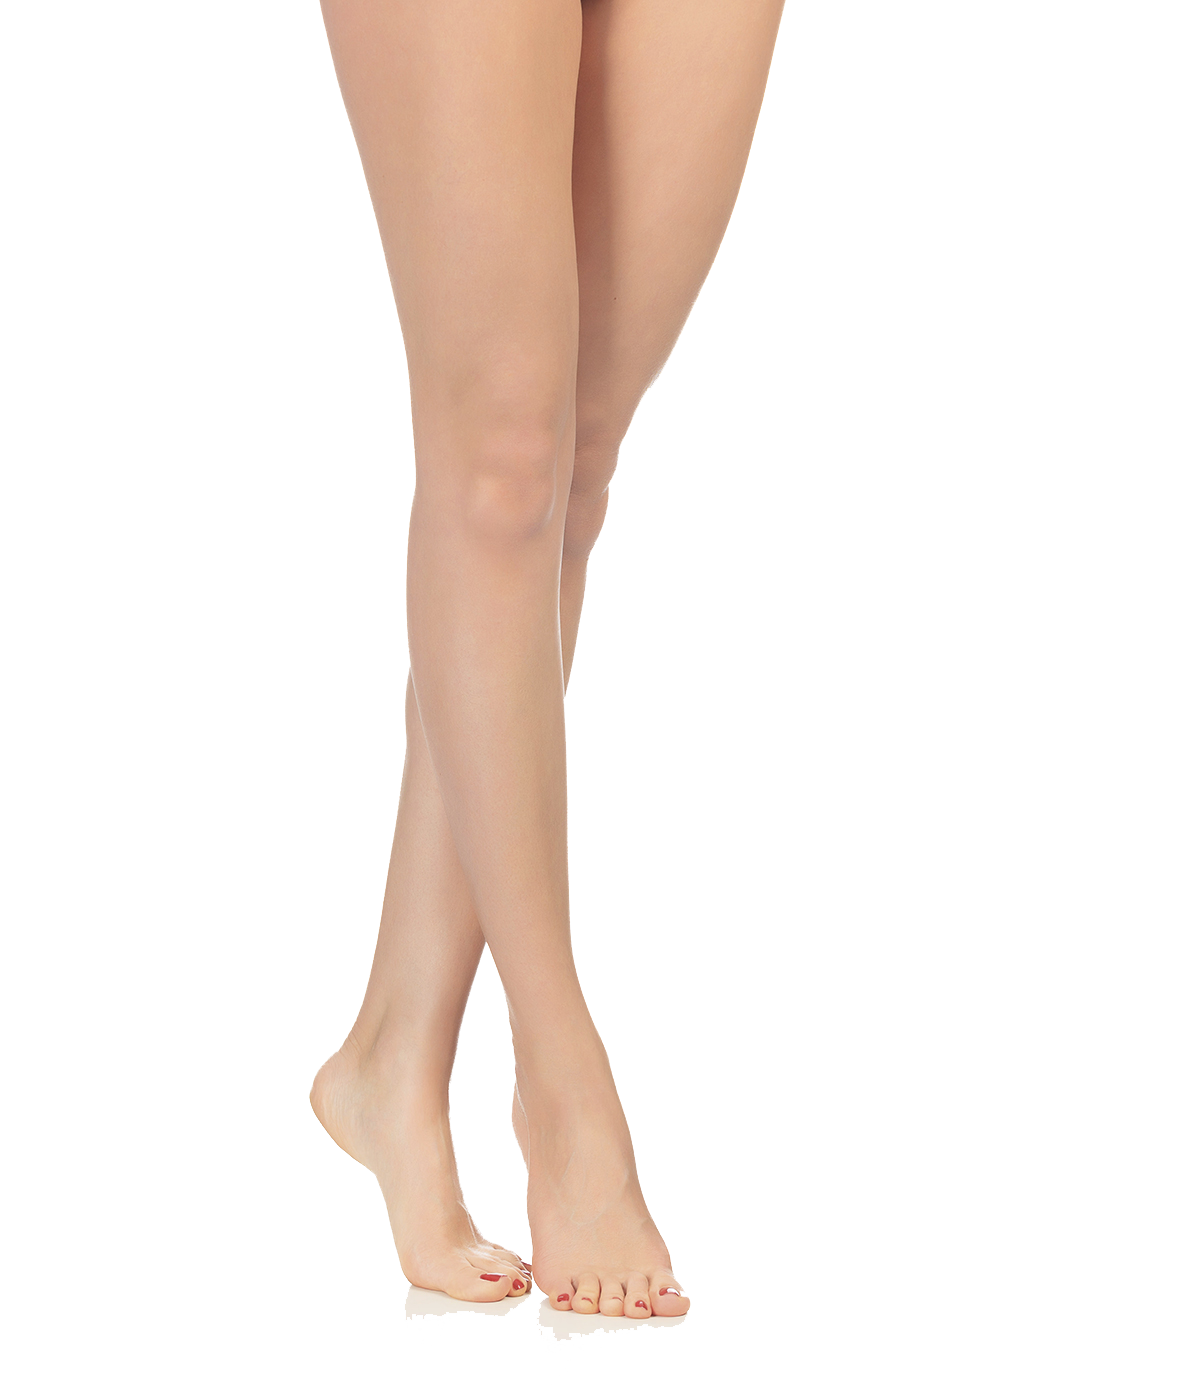 Female-Leg-PNG-HD.png - Feet PNG HD